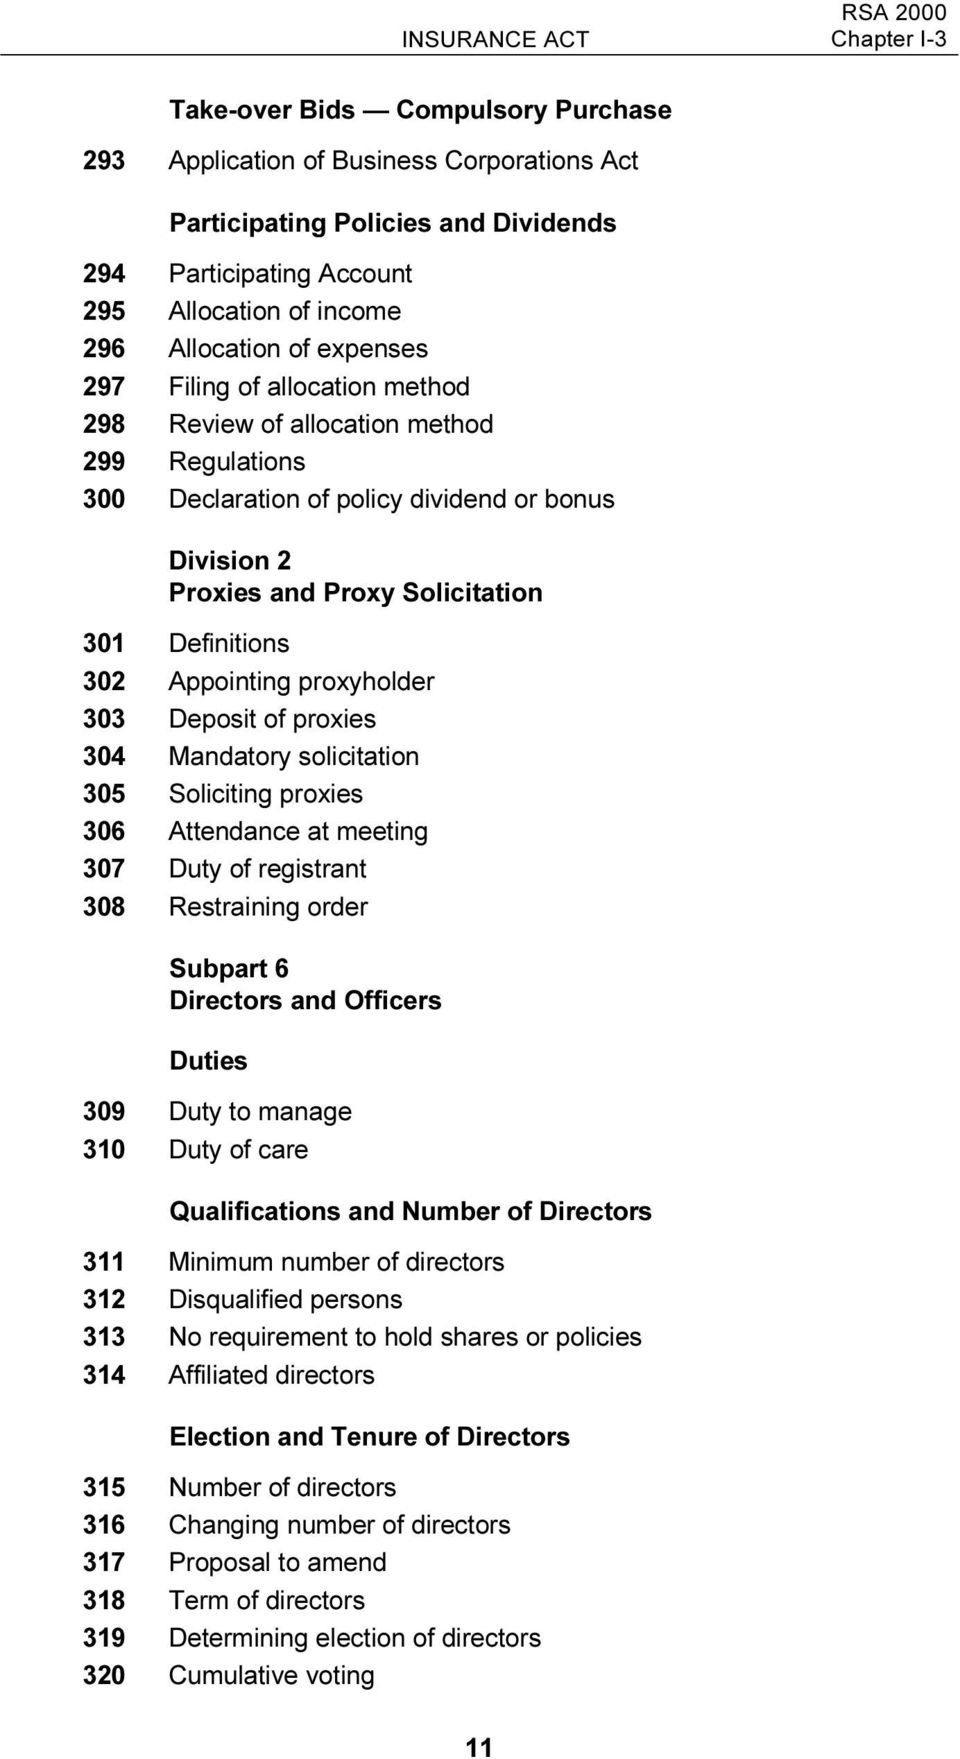 Definitions 302 Appointing proxyholder 303 Deposit of proxies 304 Mandatory solicitation 305 Soliciting proxies 306 Attendance at meeting 307 Duty of registrant 308 Restraining order Subpart 6